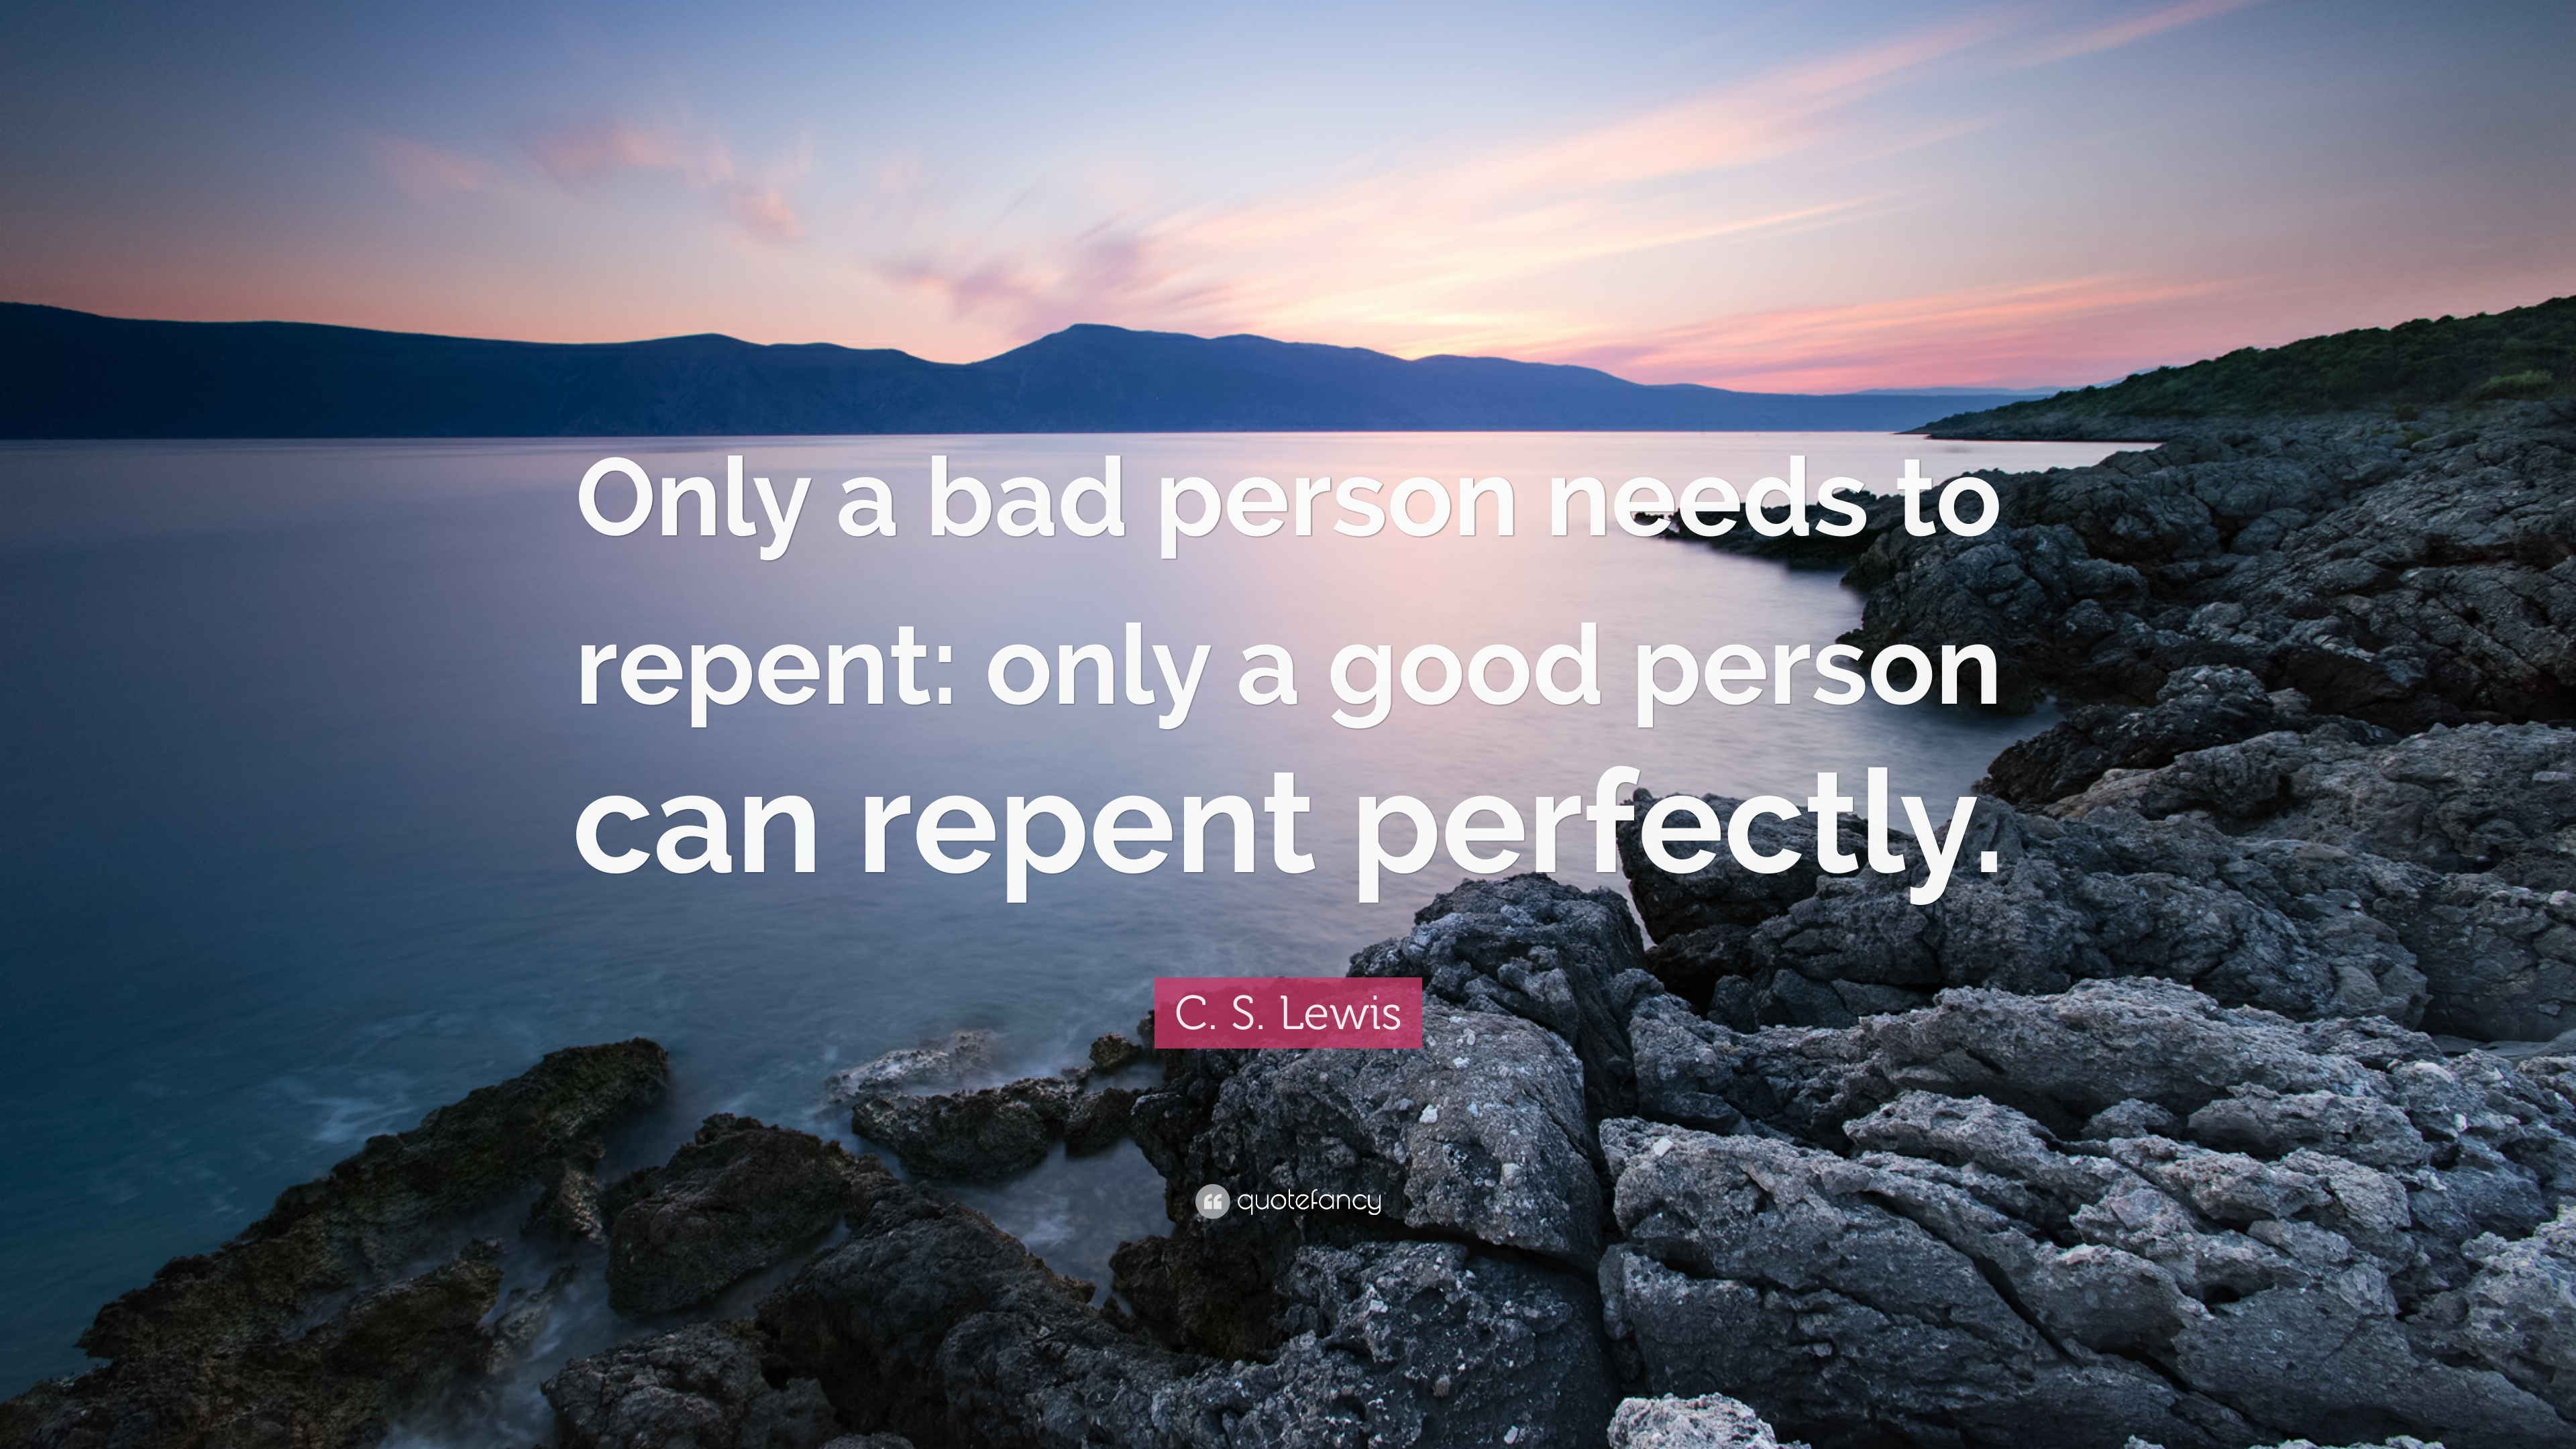 C S Lewis Quote Only A Bad Person Needs To Repent Only A Good